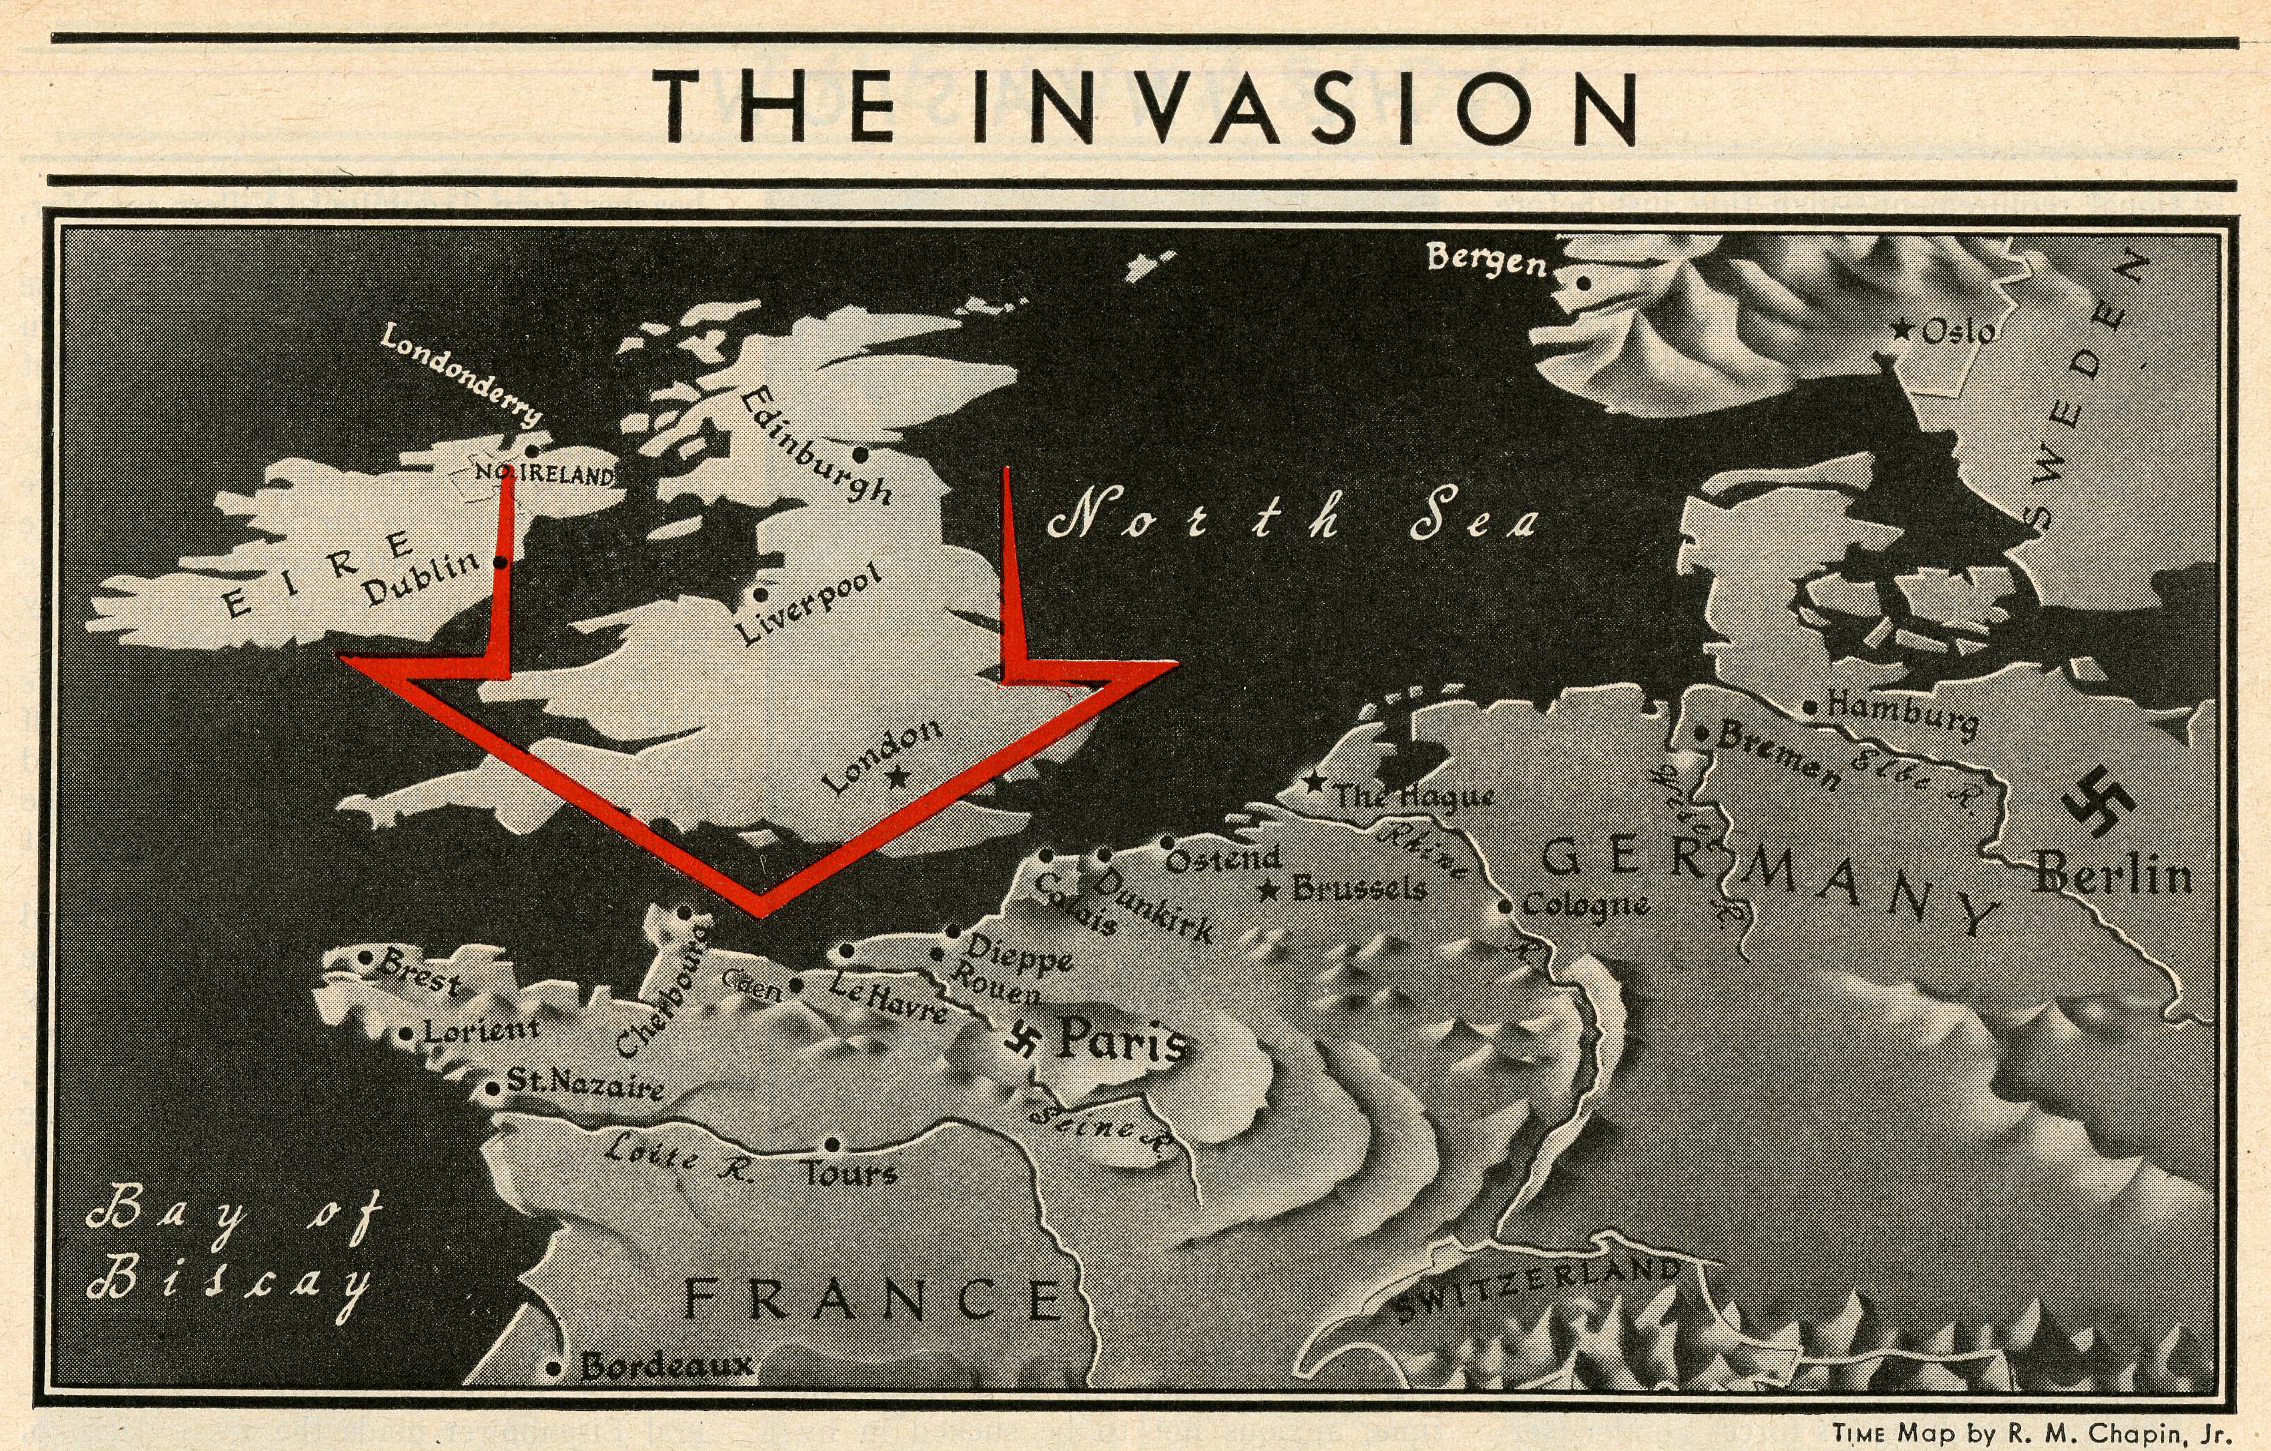 From the June 12, 1944 issue of TIME.